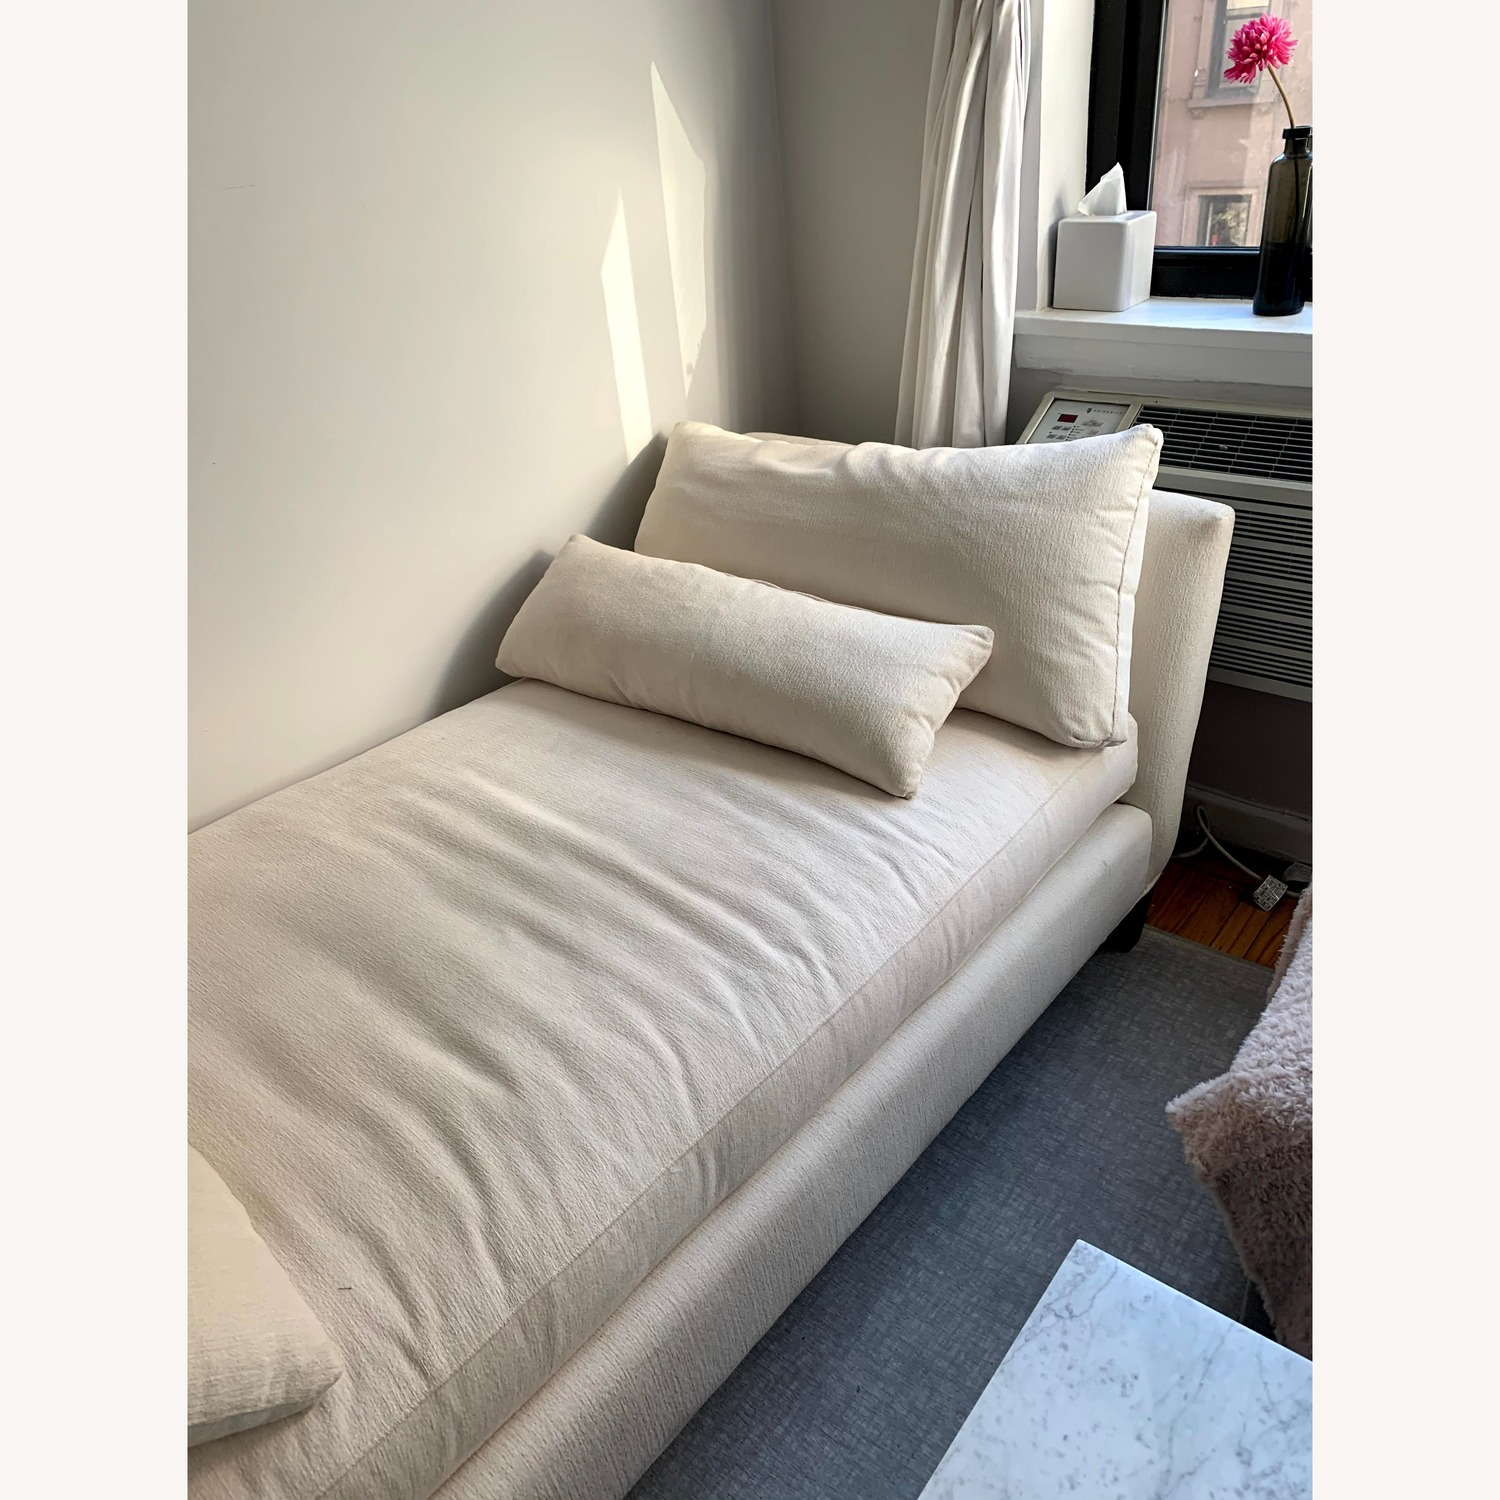 Crate and Barrel Daybed